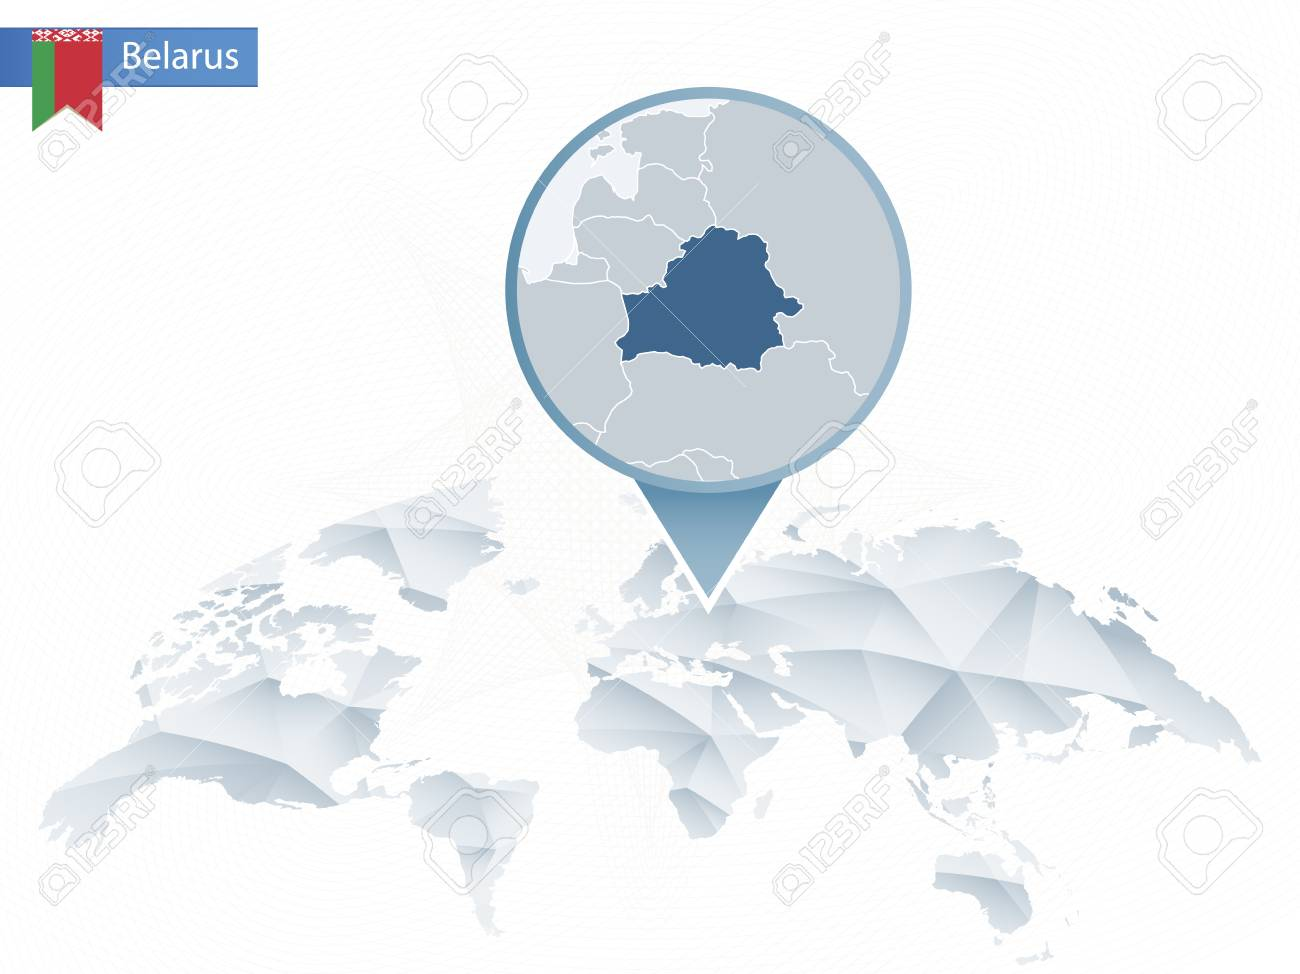 Abstract Rounded World Map With Pinned Detailed Belarus Map